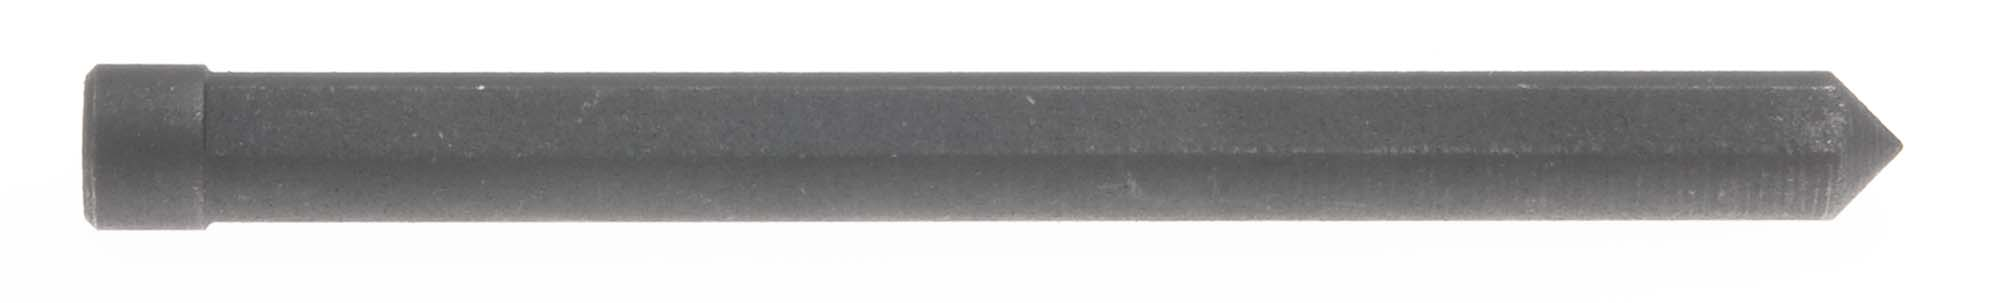 "Ejector Pin for 7/16 x 1"" Annular Cutter"